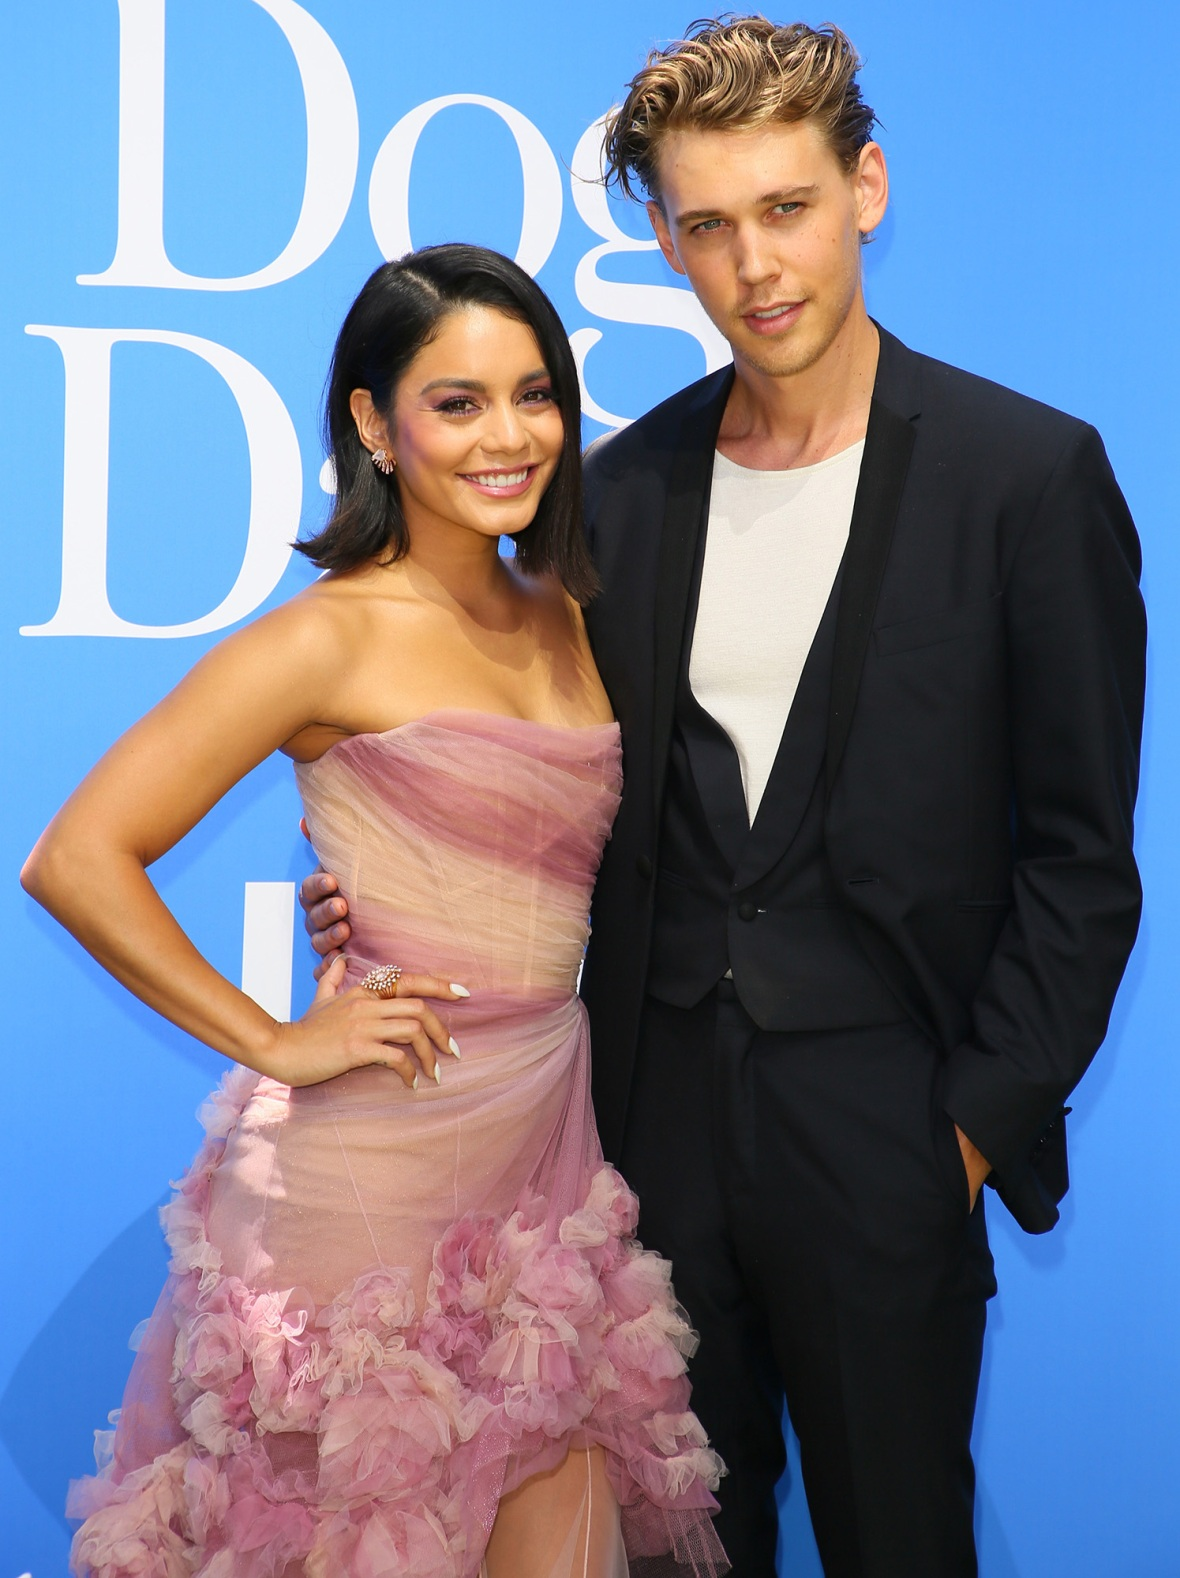 How long has vanessa and austin been dating